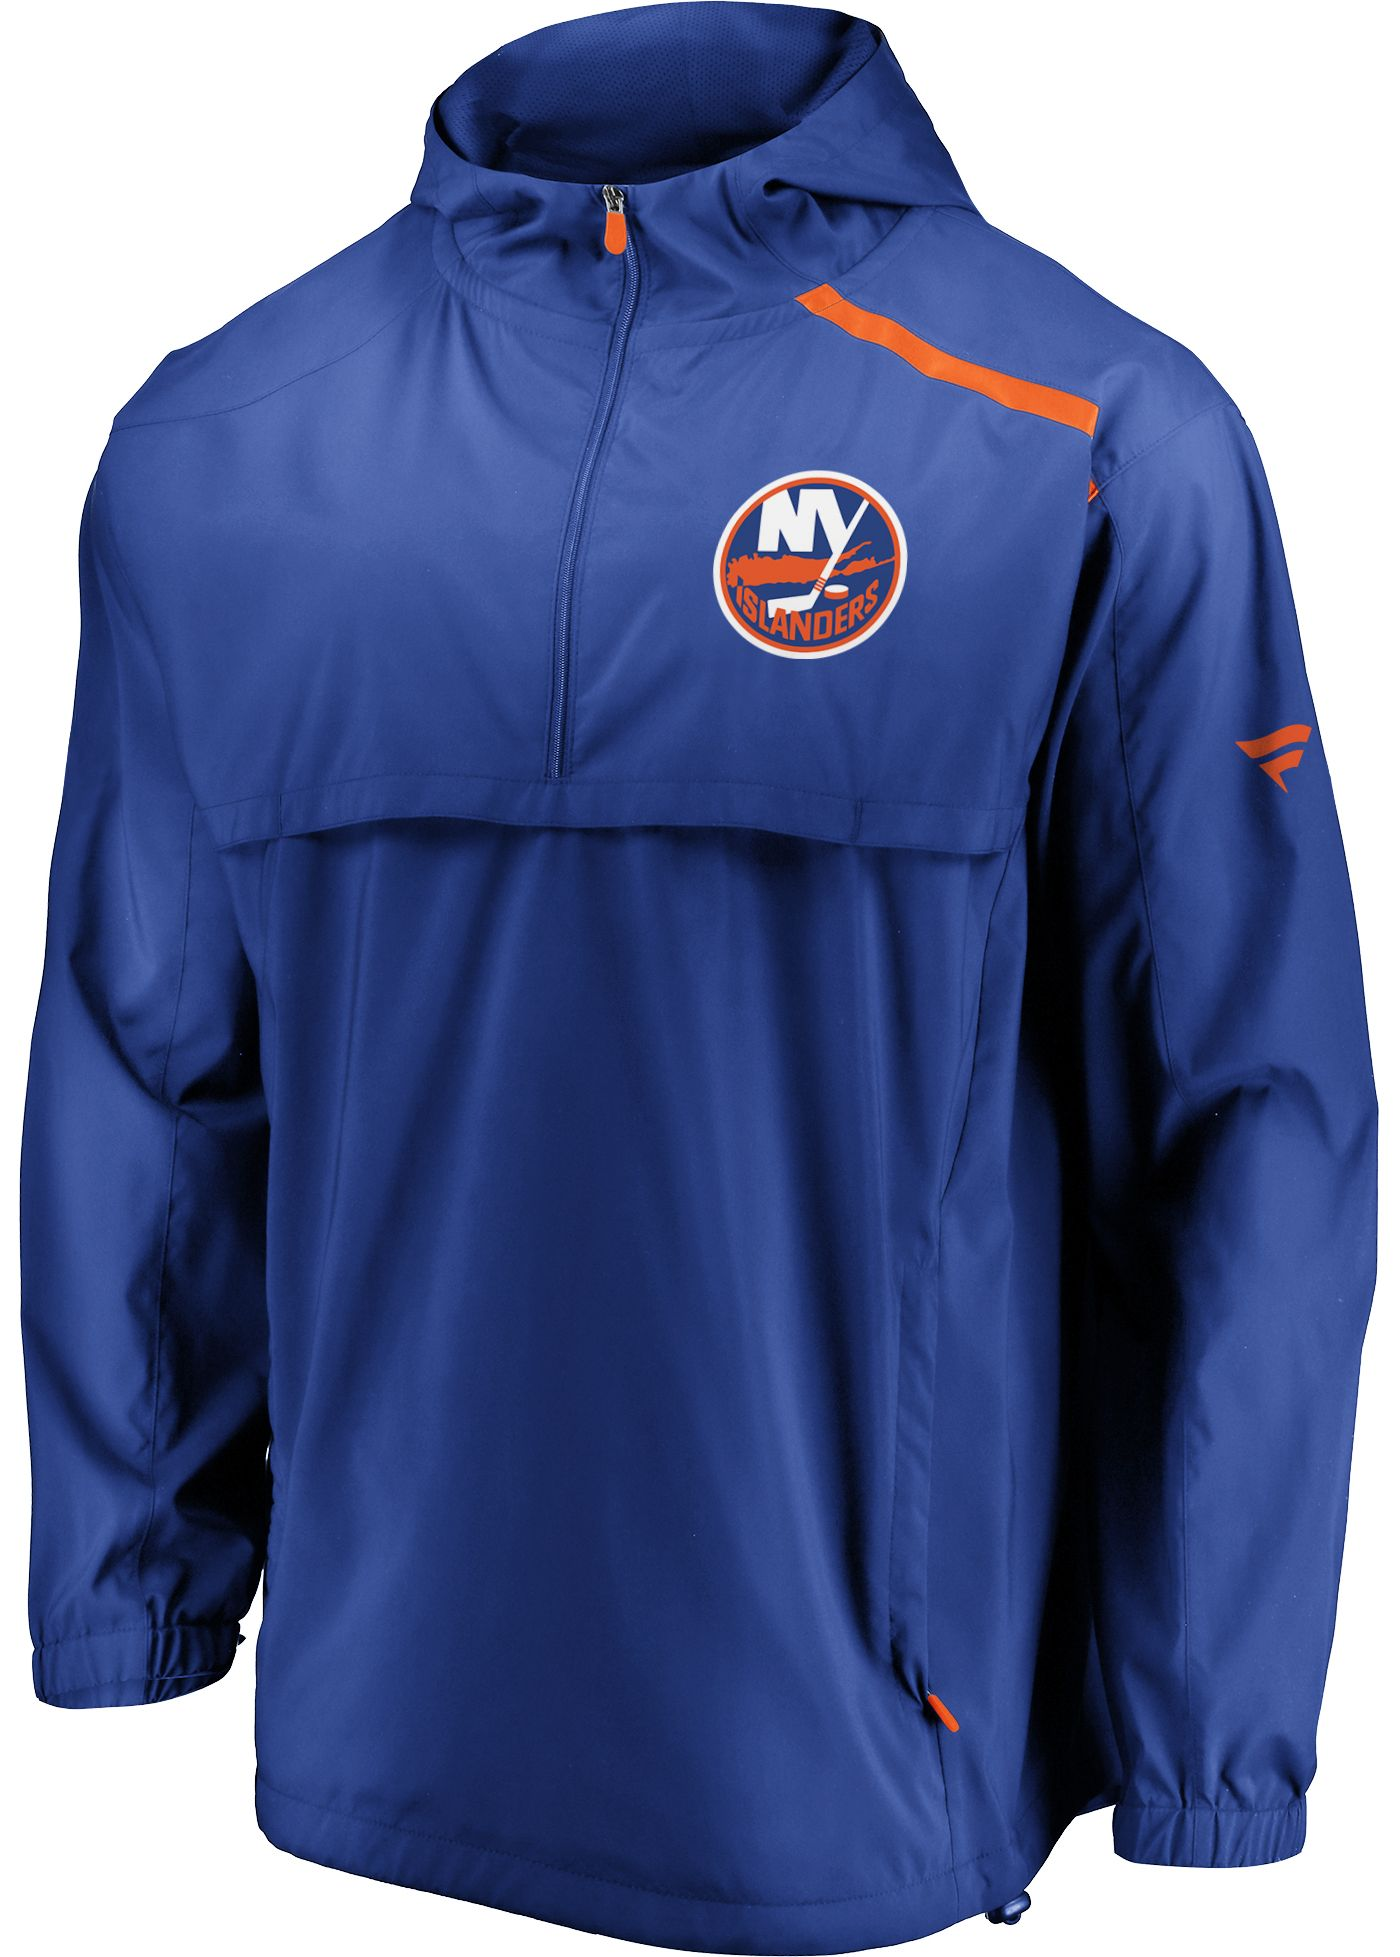 NHL Men's New York Islanders Authentic Pro Blue Anorak Jacket